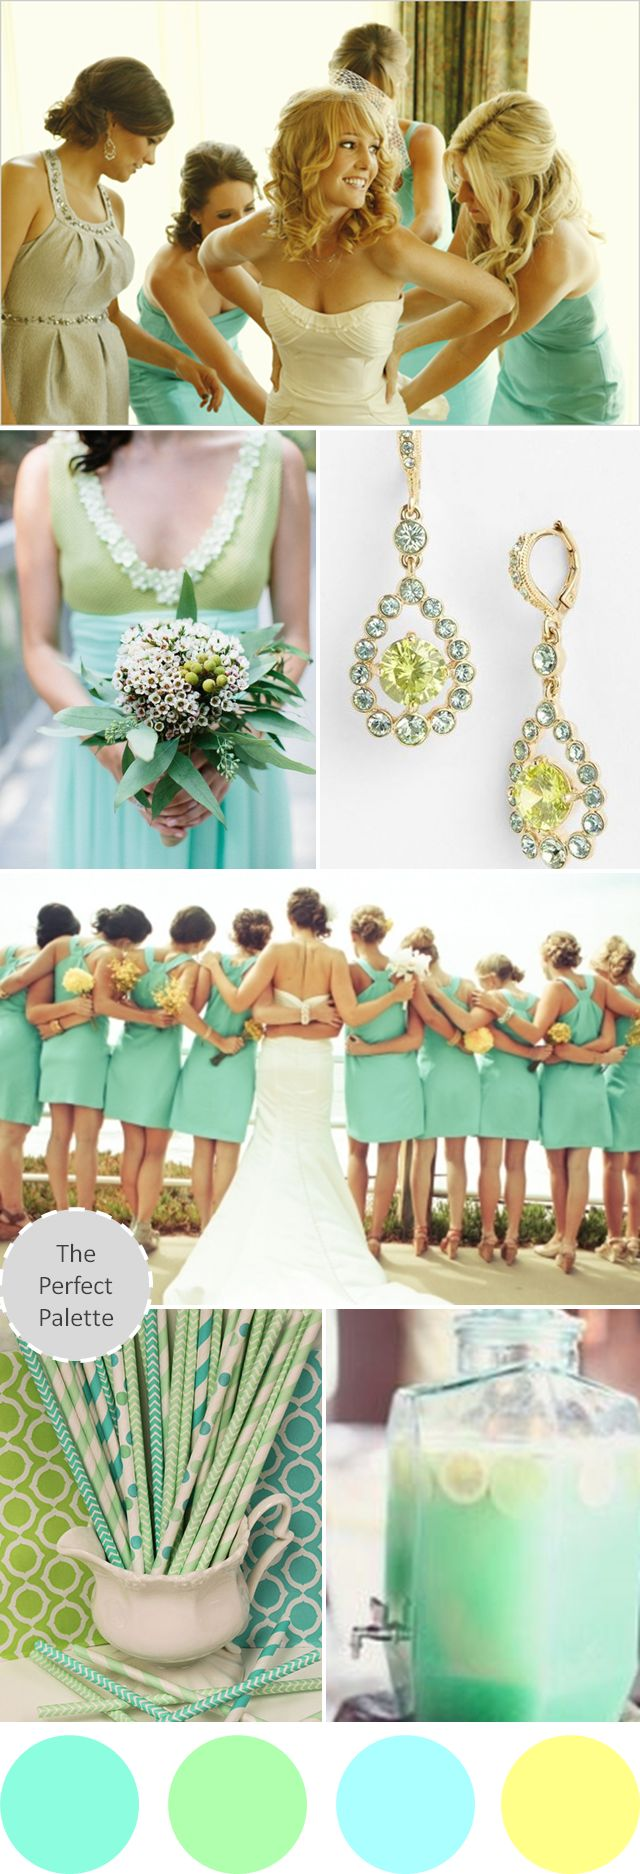 Wedding Colors I Love | Shades of Mint, Green, Aqua + Yellow! http://www.theperfectpalette.com/2013/04/wedding-colors-i-love-shades-of-mint.html